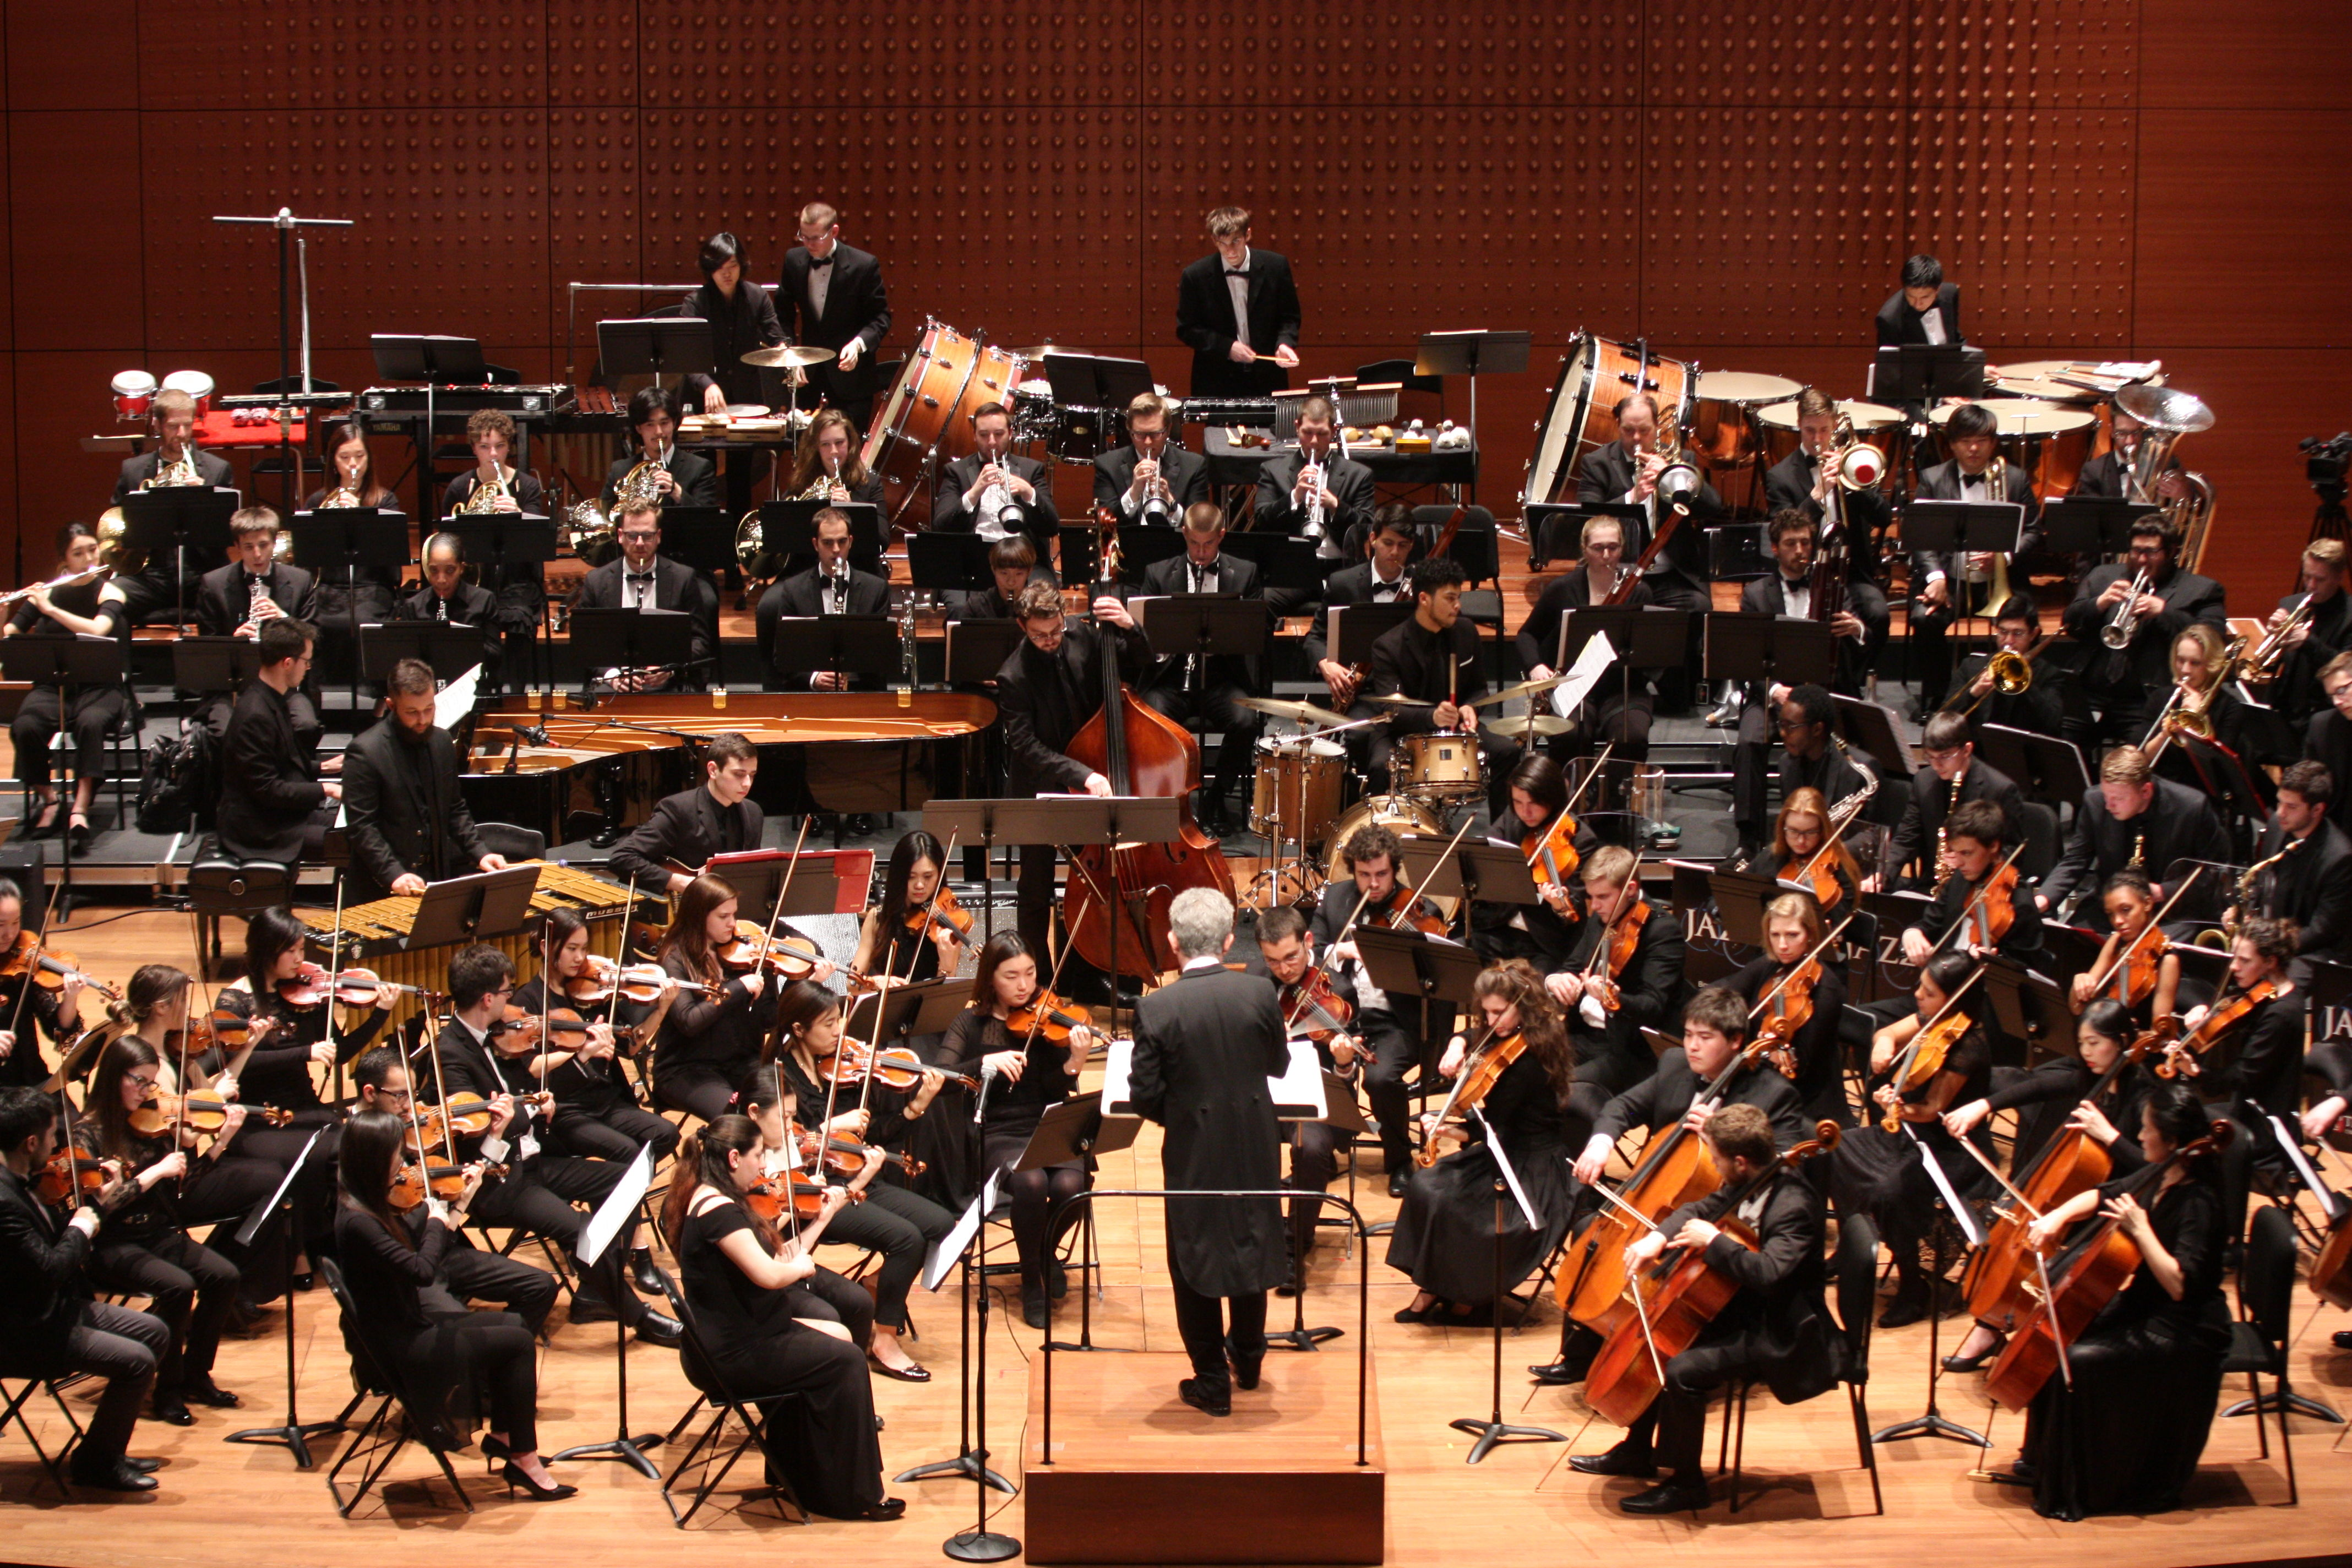 Temple University Symphony orchestra and jazz band musicians on stage at Lincoln Center, conducted by Andreas Delfs.